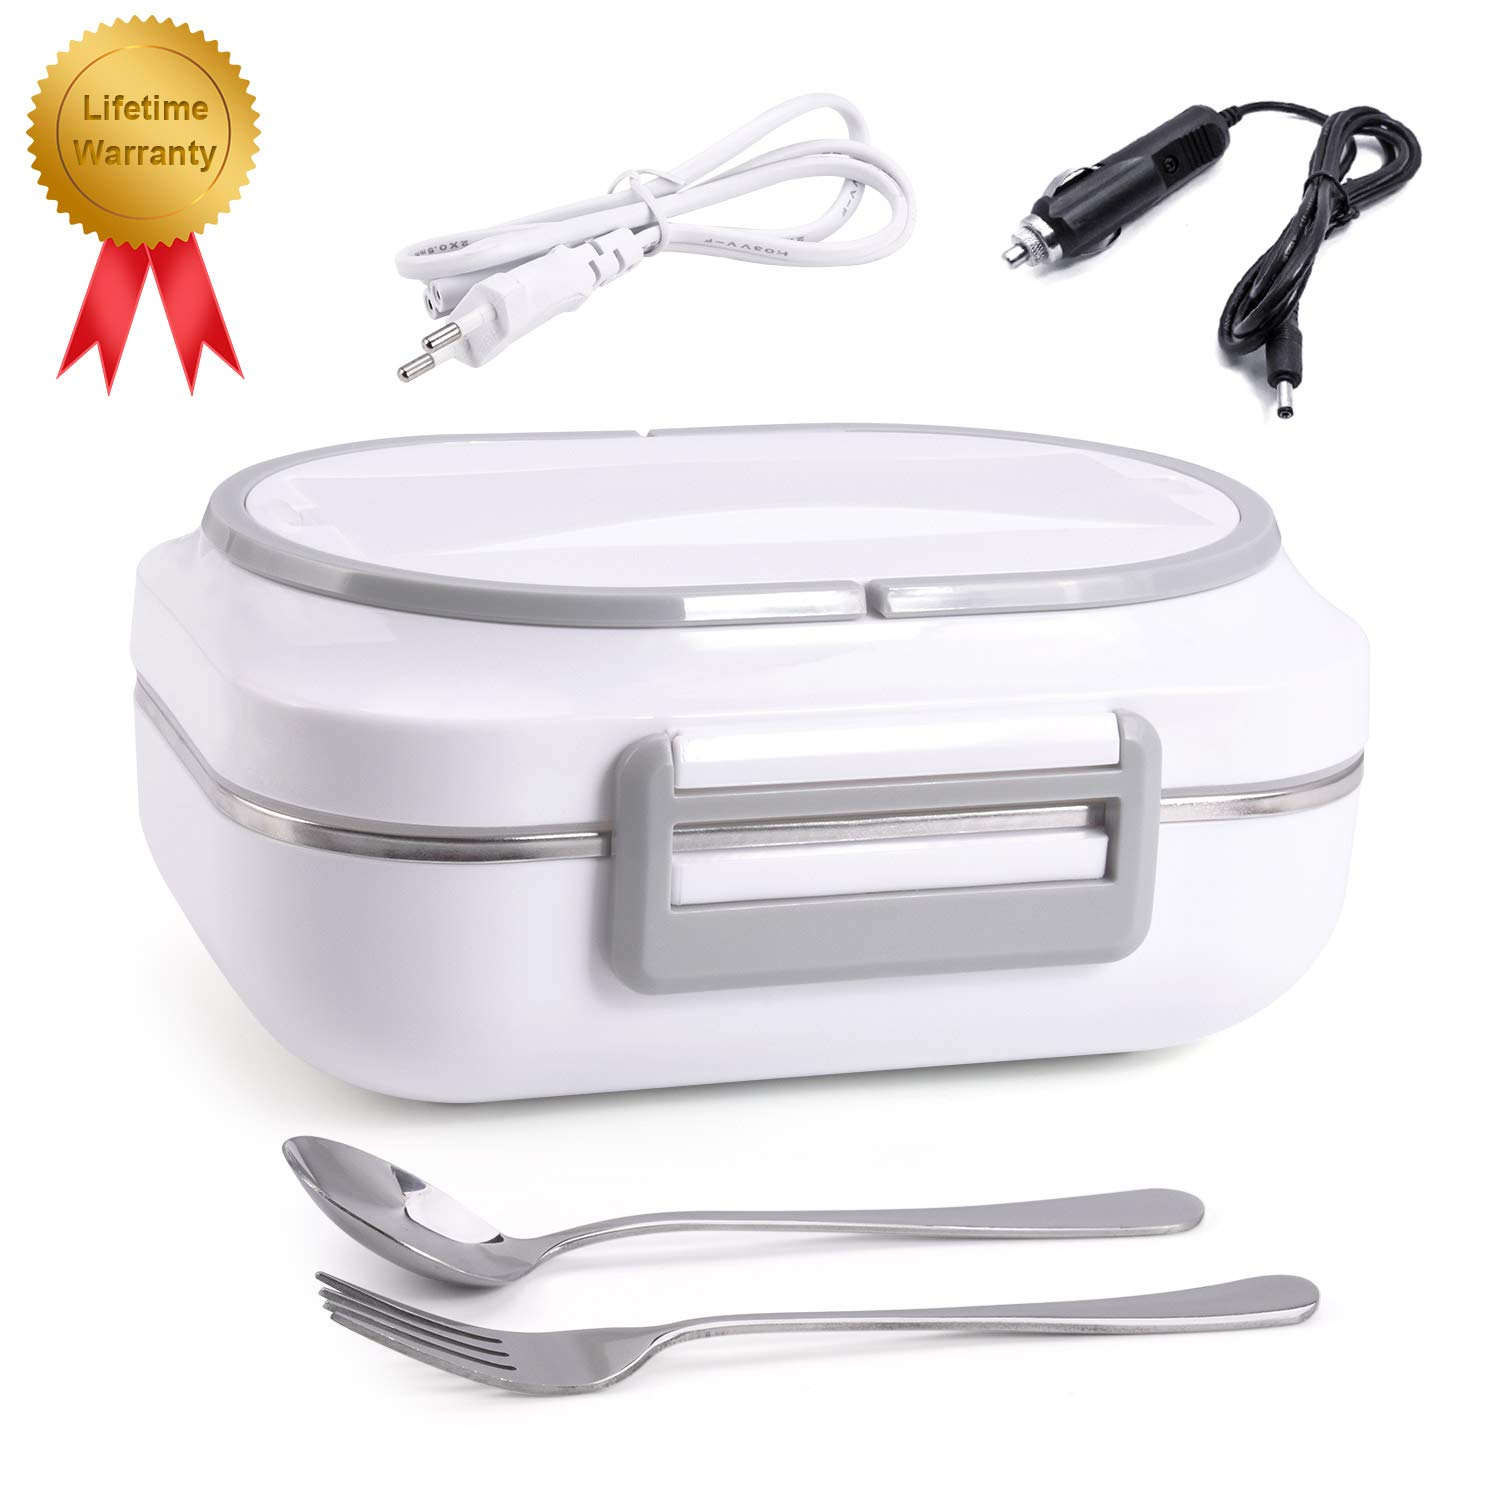 Electric Heating Lunch Box Dual Use Car Home Office Portable Food Heater with Removable 304 Stainless Steel Container